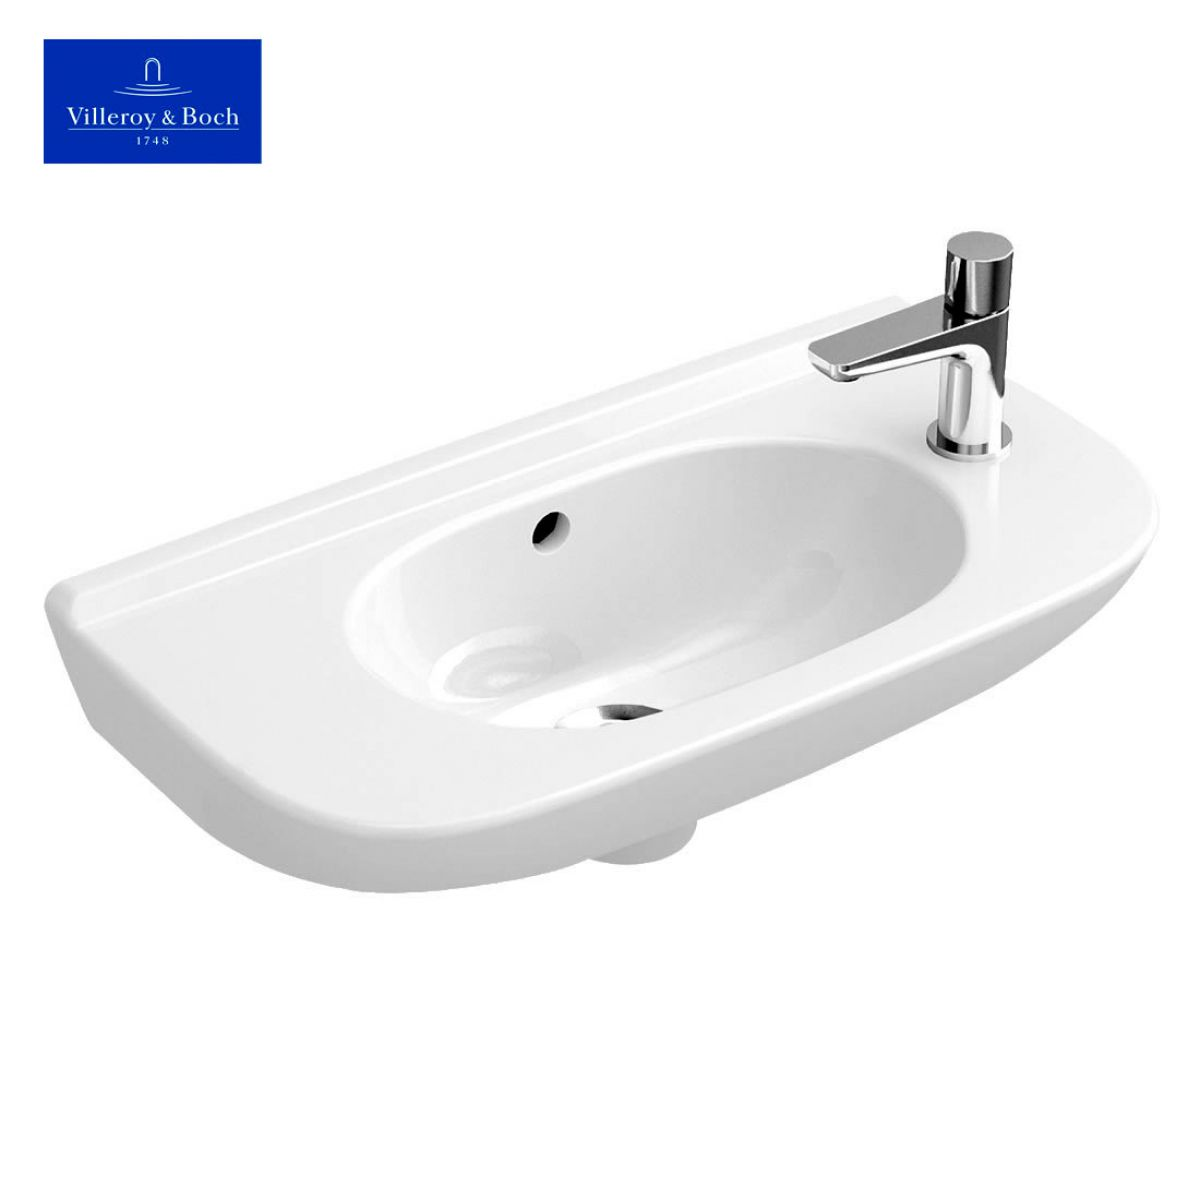 villeroy boch o novo compact narrow handwash basin uk bathrooms. Black Bedroom Furniture Sets. Home Design Ideas